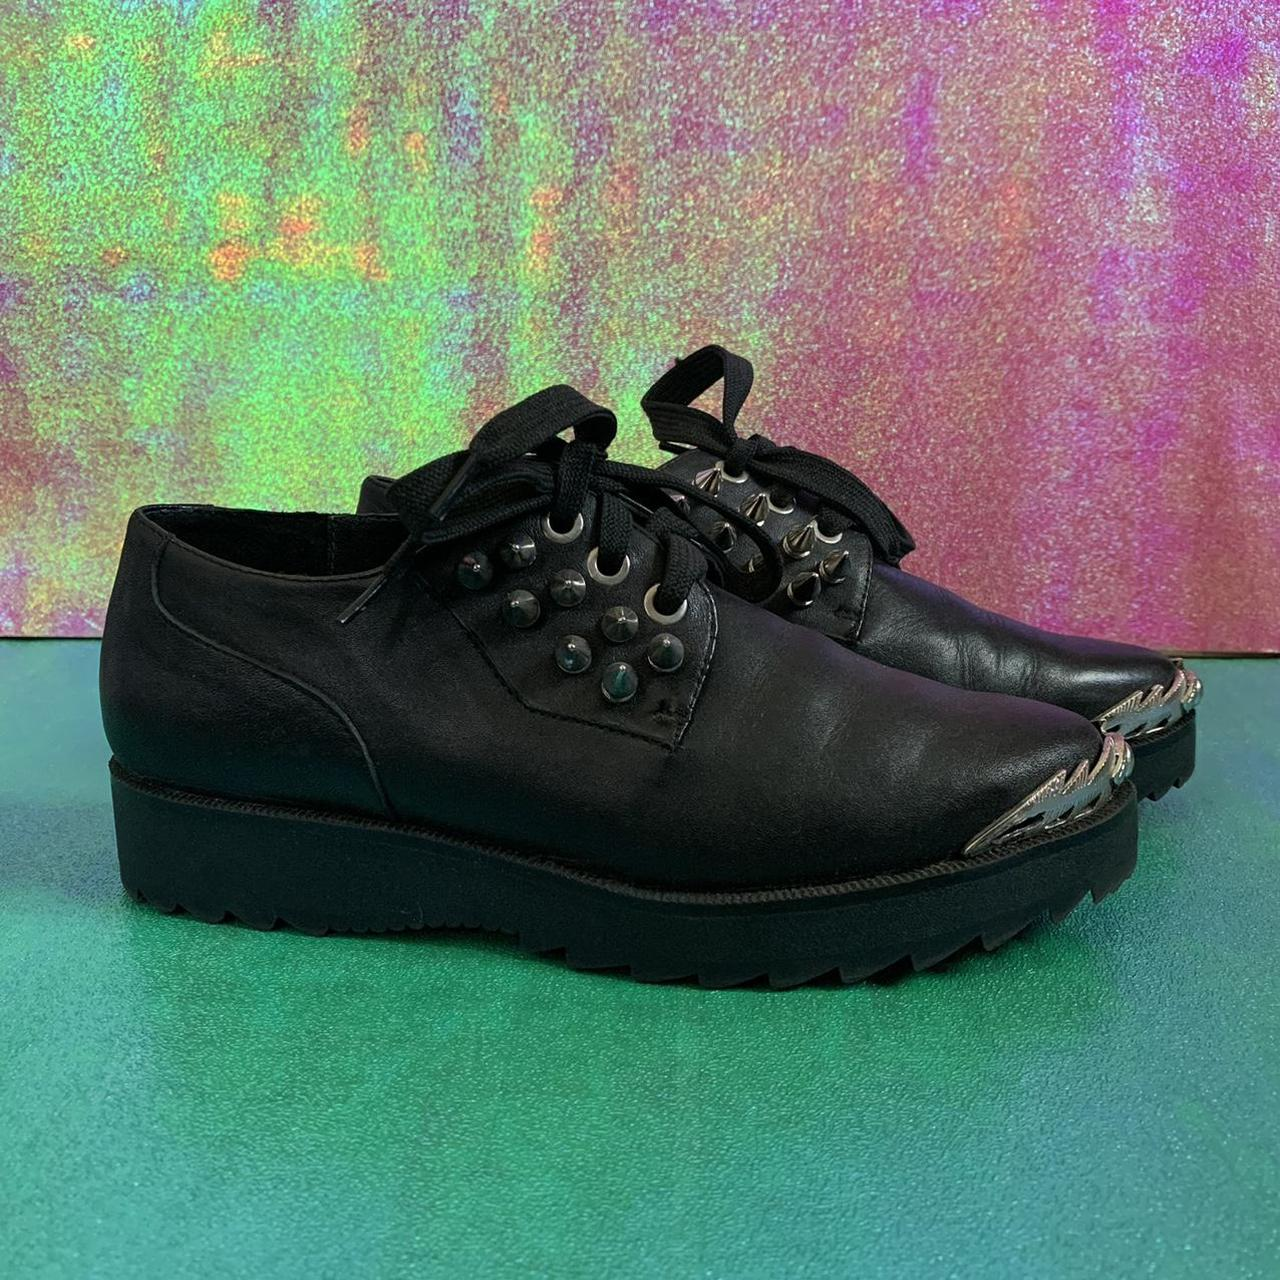 Product Image 1 - UNIF Grim Creepers. These are